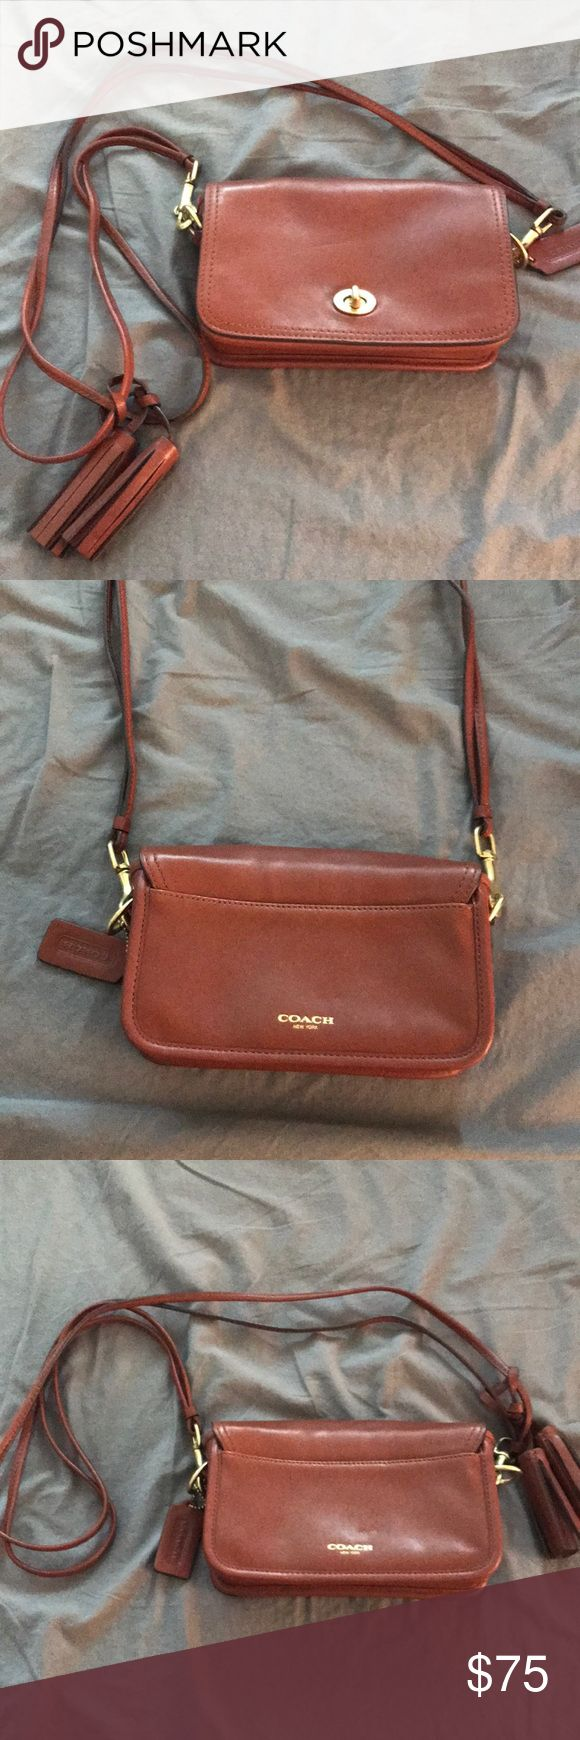 Brown leather Coach purse Never been used! Great small bag. Can be adjusted to go over one shoulder or cross body. Mint condition! Coach Bags Shoulder Bags